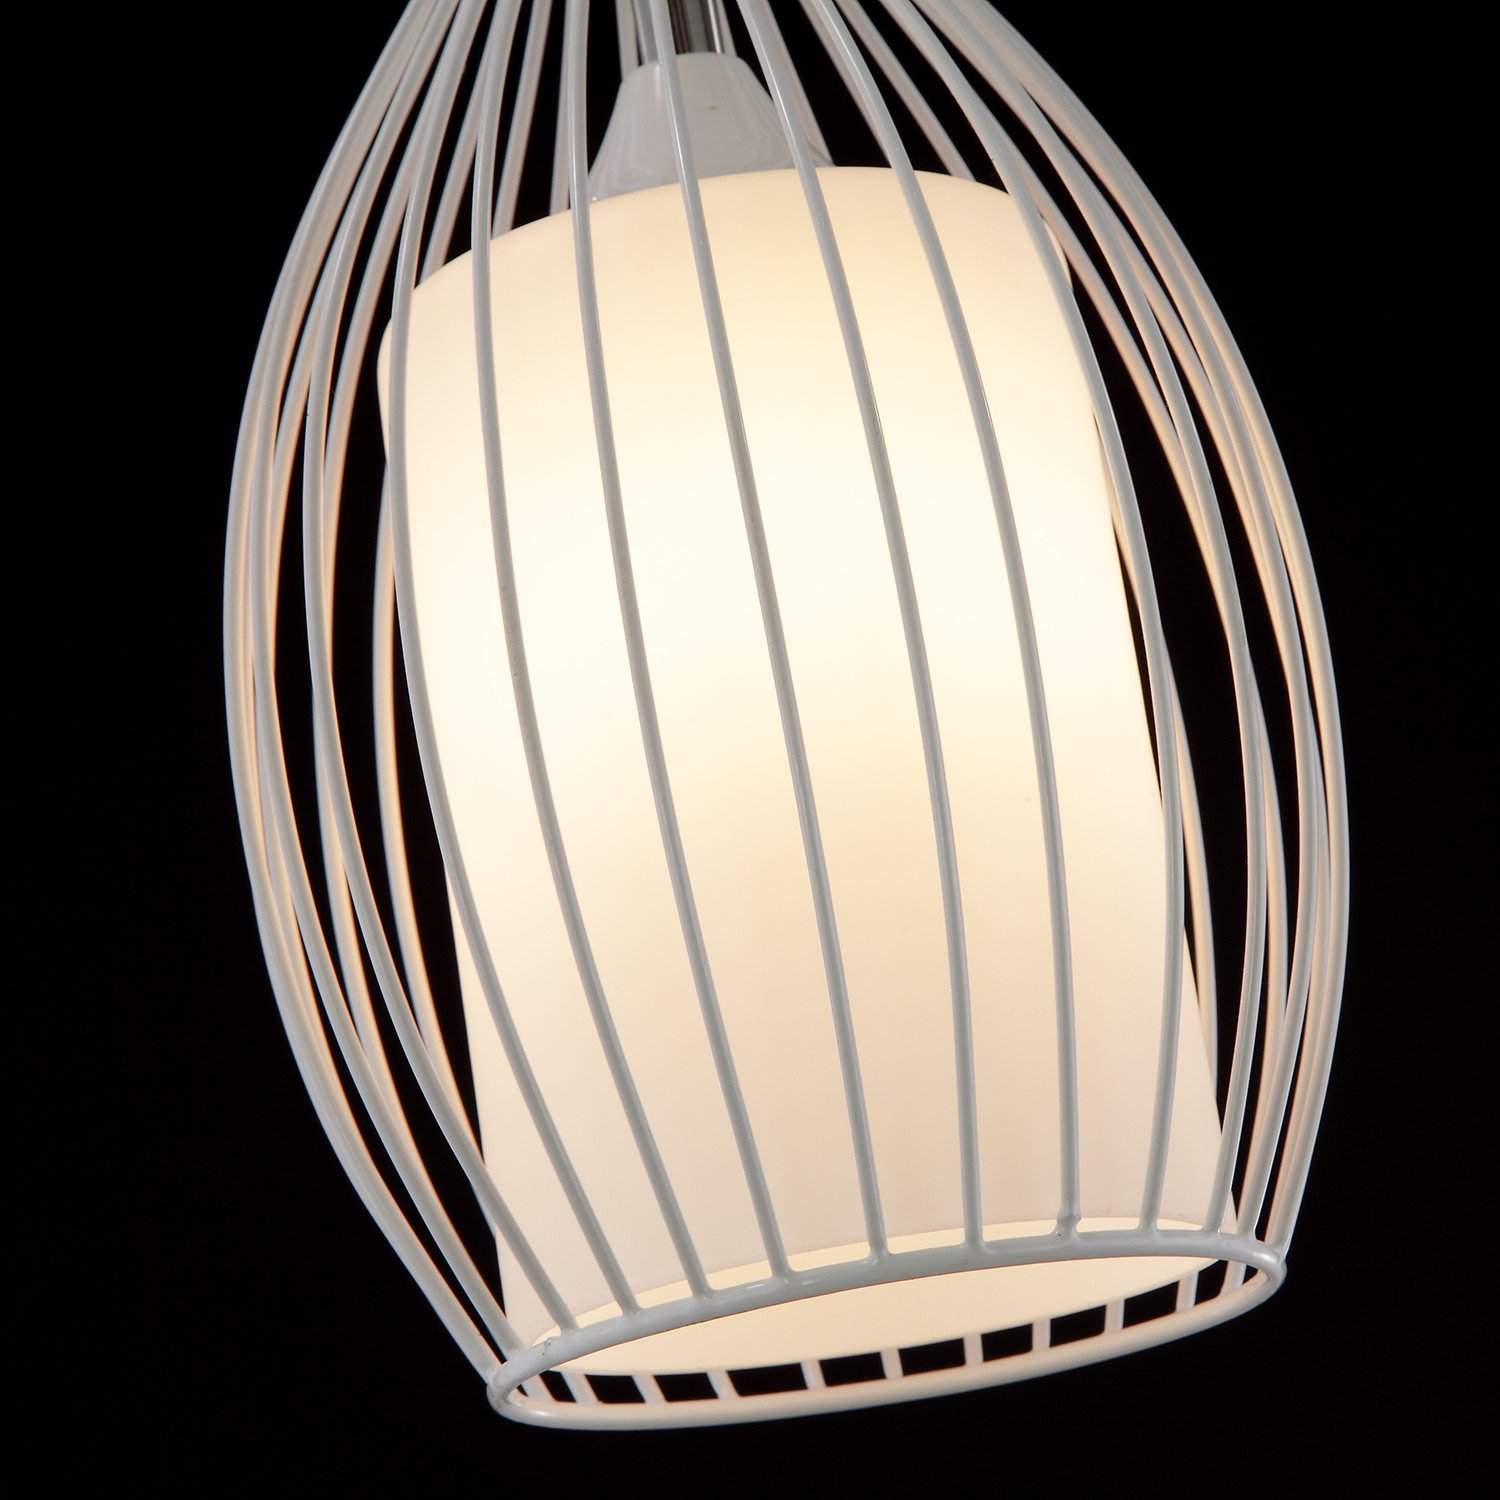 LivEditor Lighting One-light Pendant with Metal Cage Shade Kitchen Island Lamp(Y4051-WM) by Liveditor Lighting (Image #3)